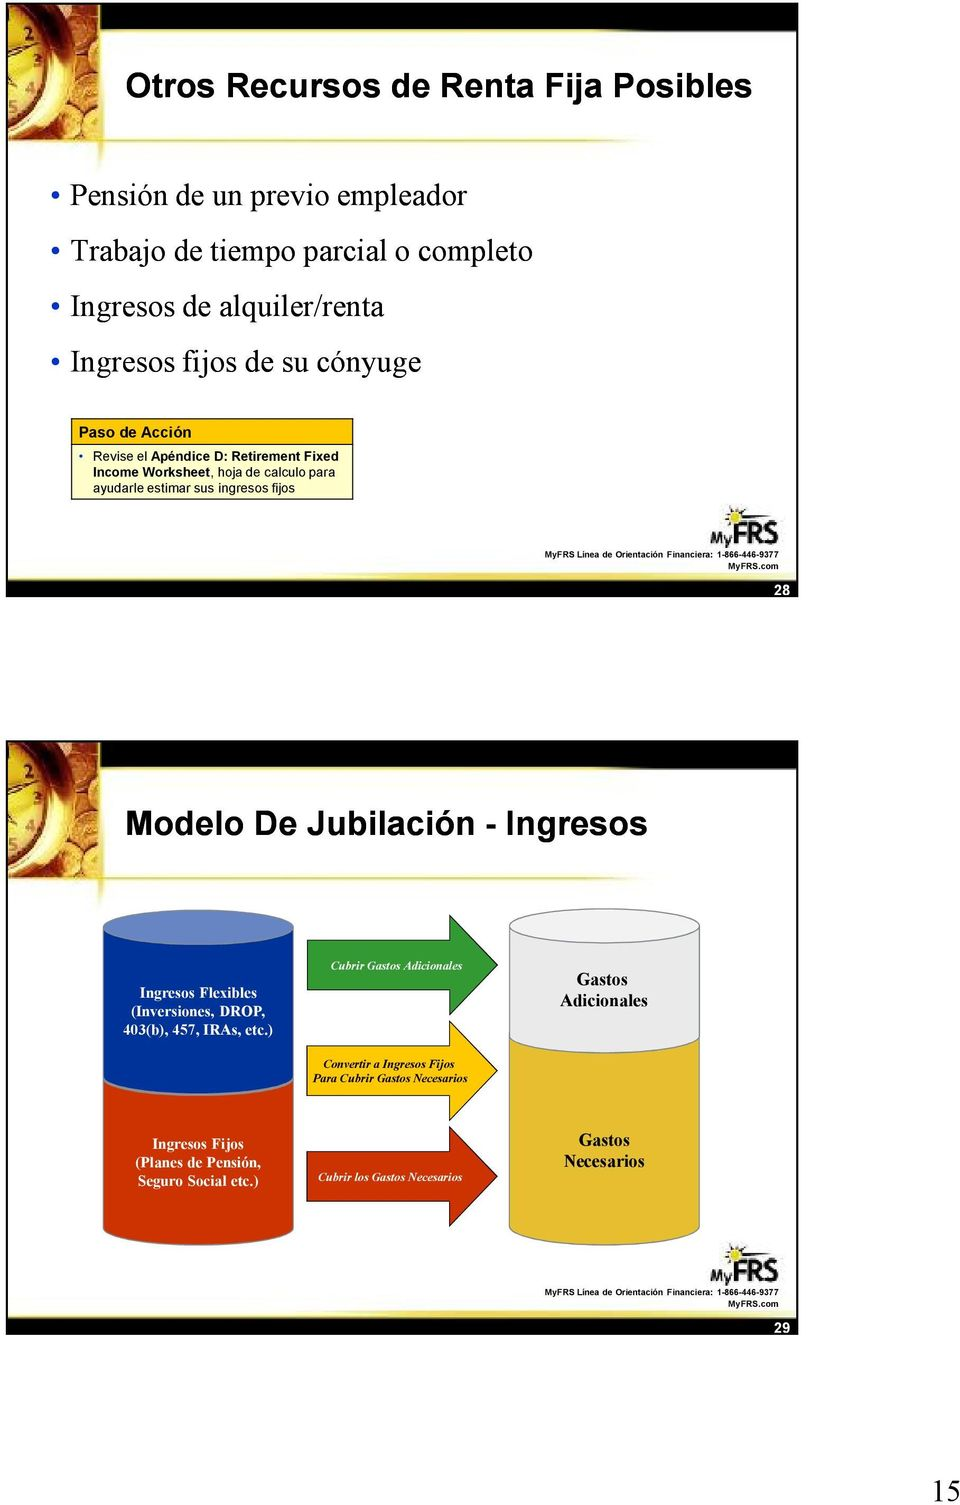 Modelo De Jubilación - Ingresos Ingresos Flexibles (Inversiones, DROP, 403(b), 457, IRAs, etc.